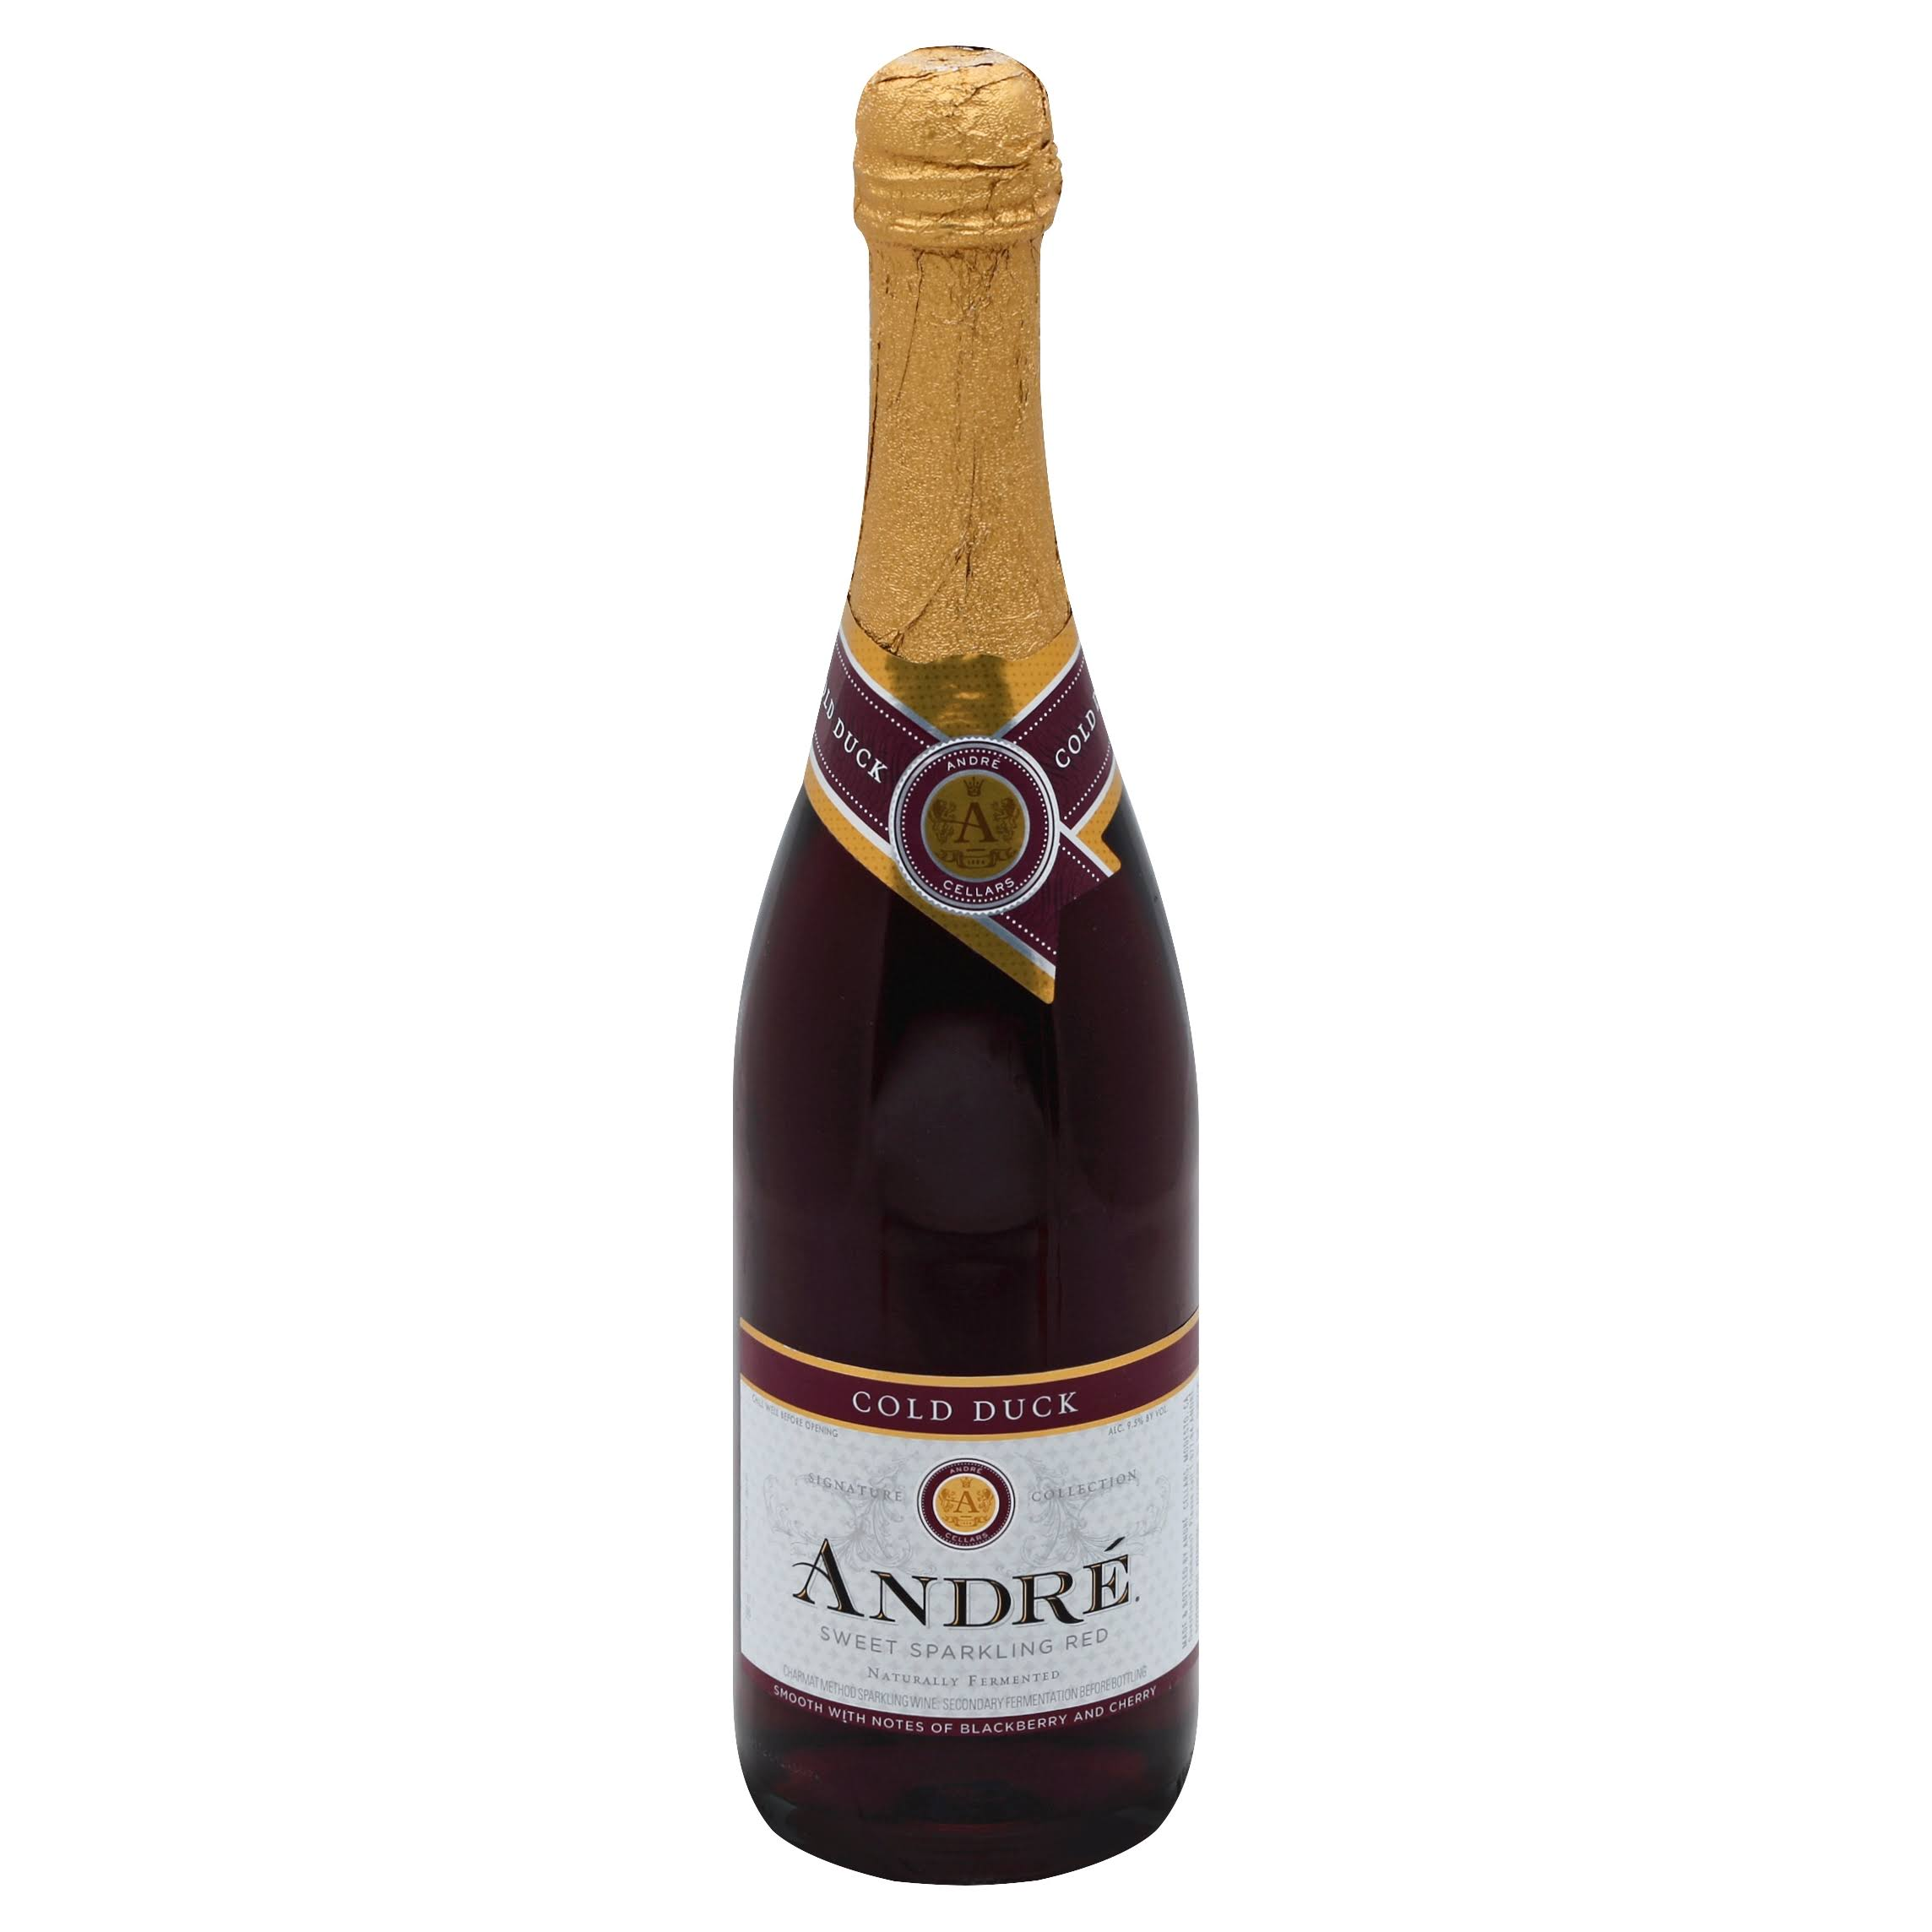 Andre Cold Duck Sparkling Sweet Red Wine